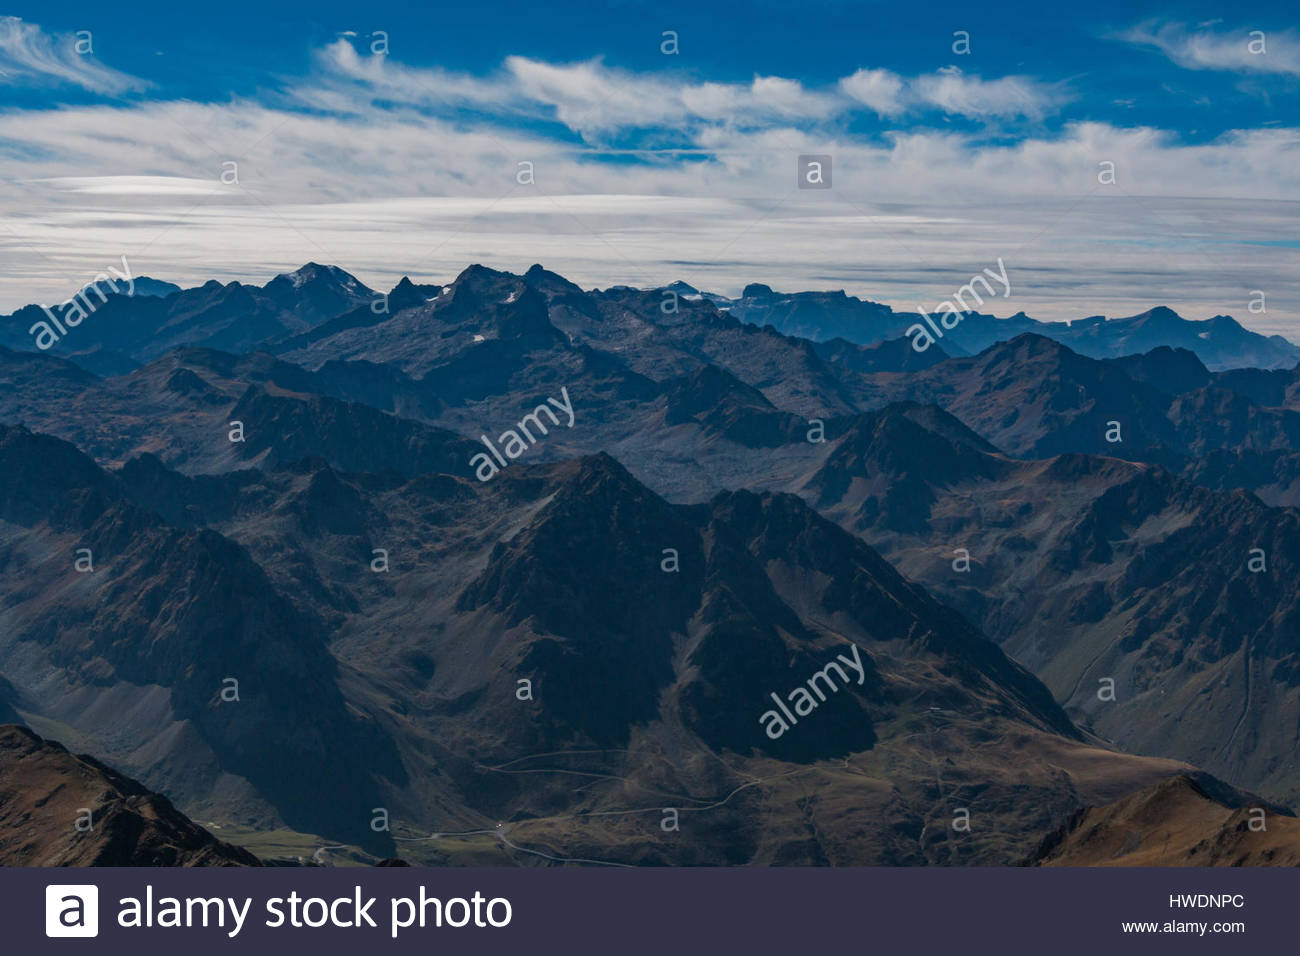 The Pyrenees as seen from Pic du Midi Stock Photo